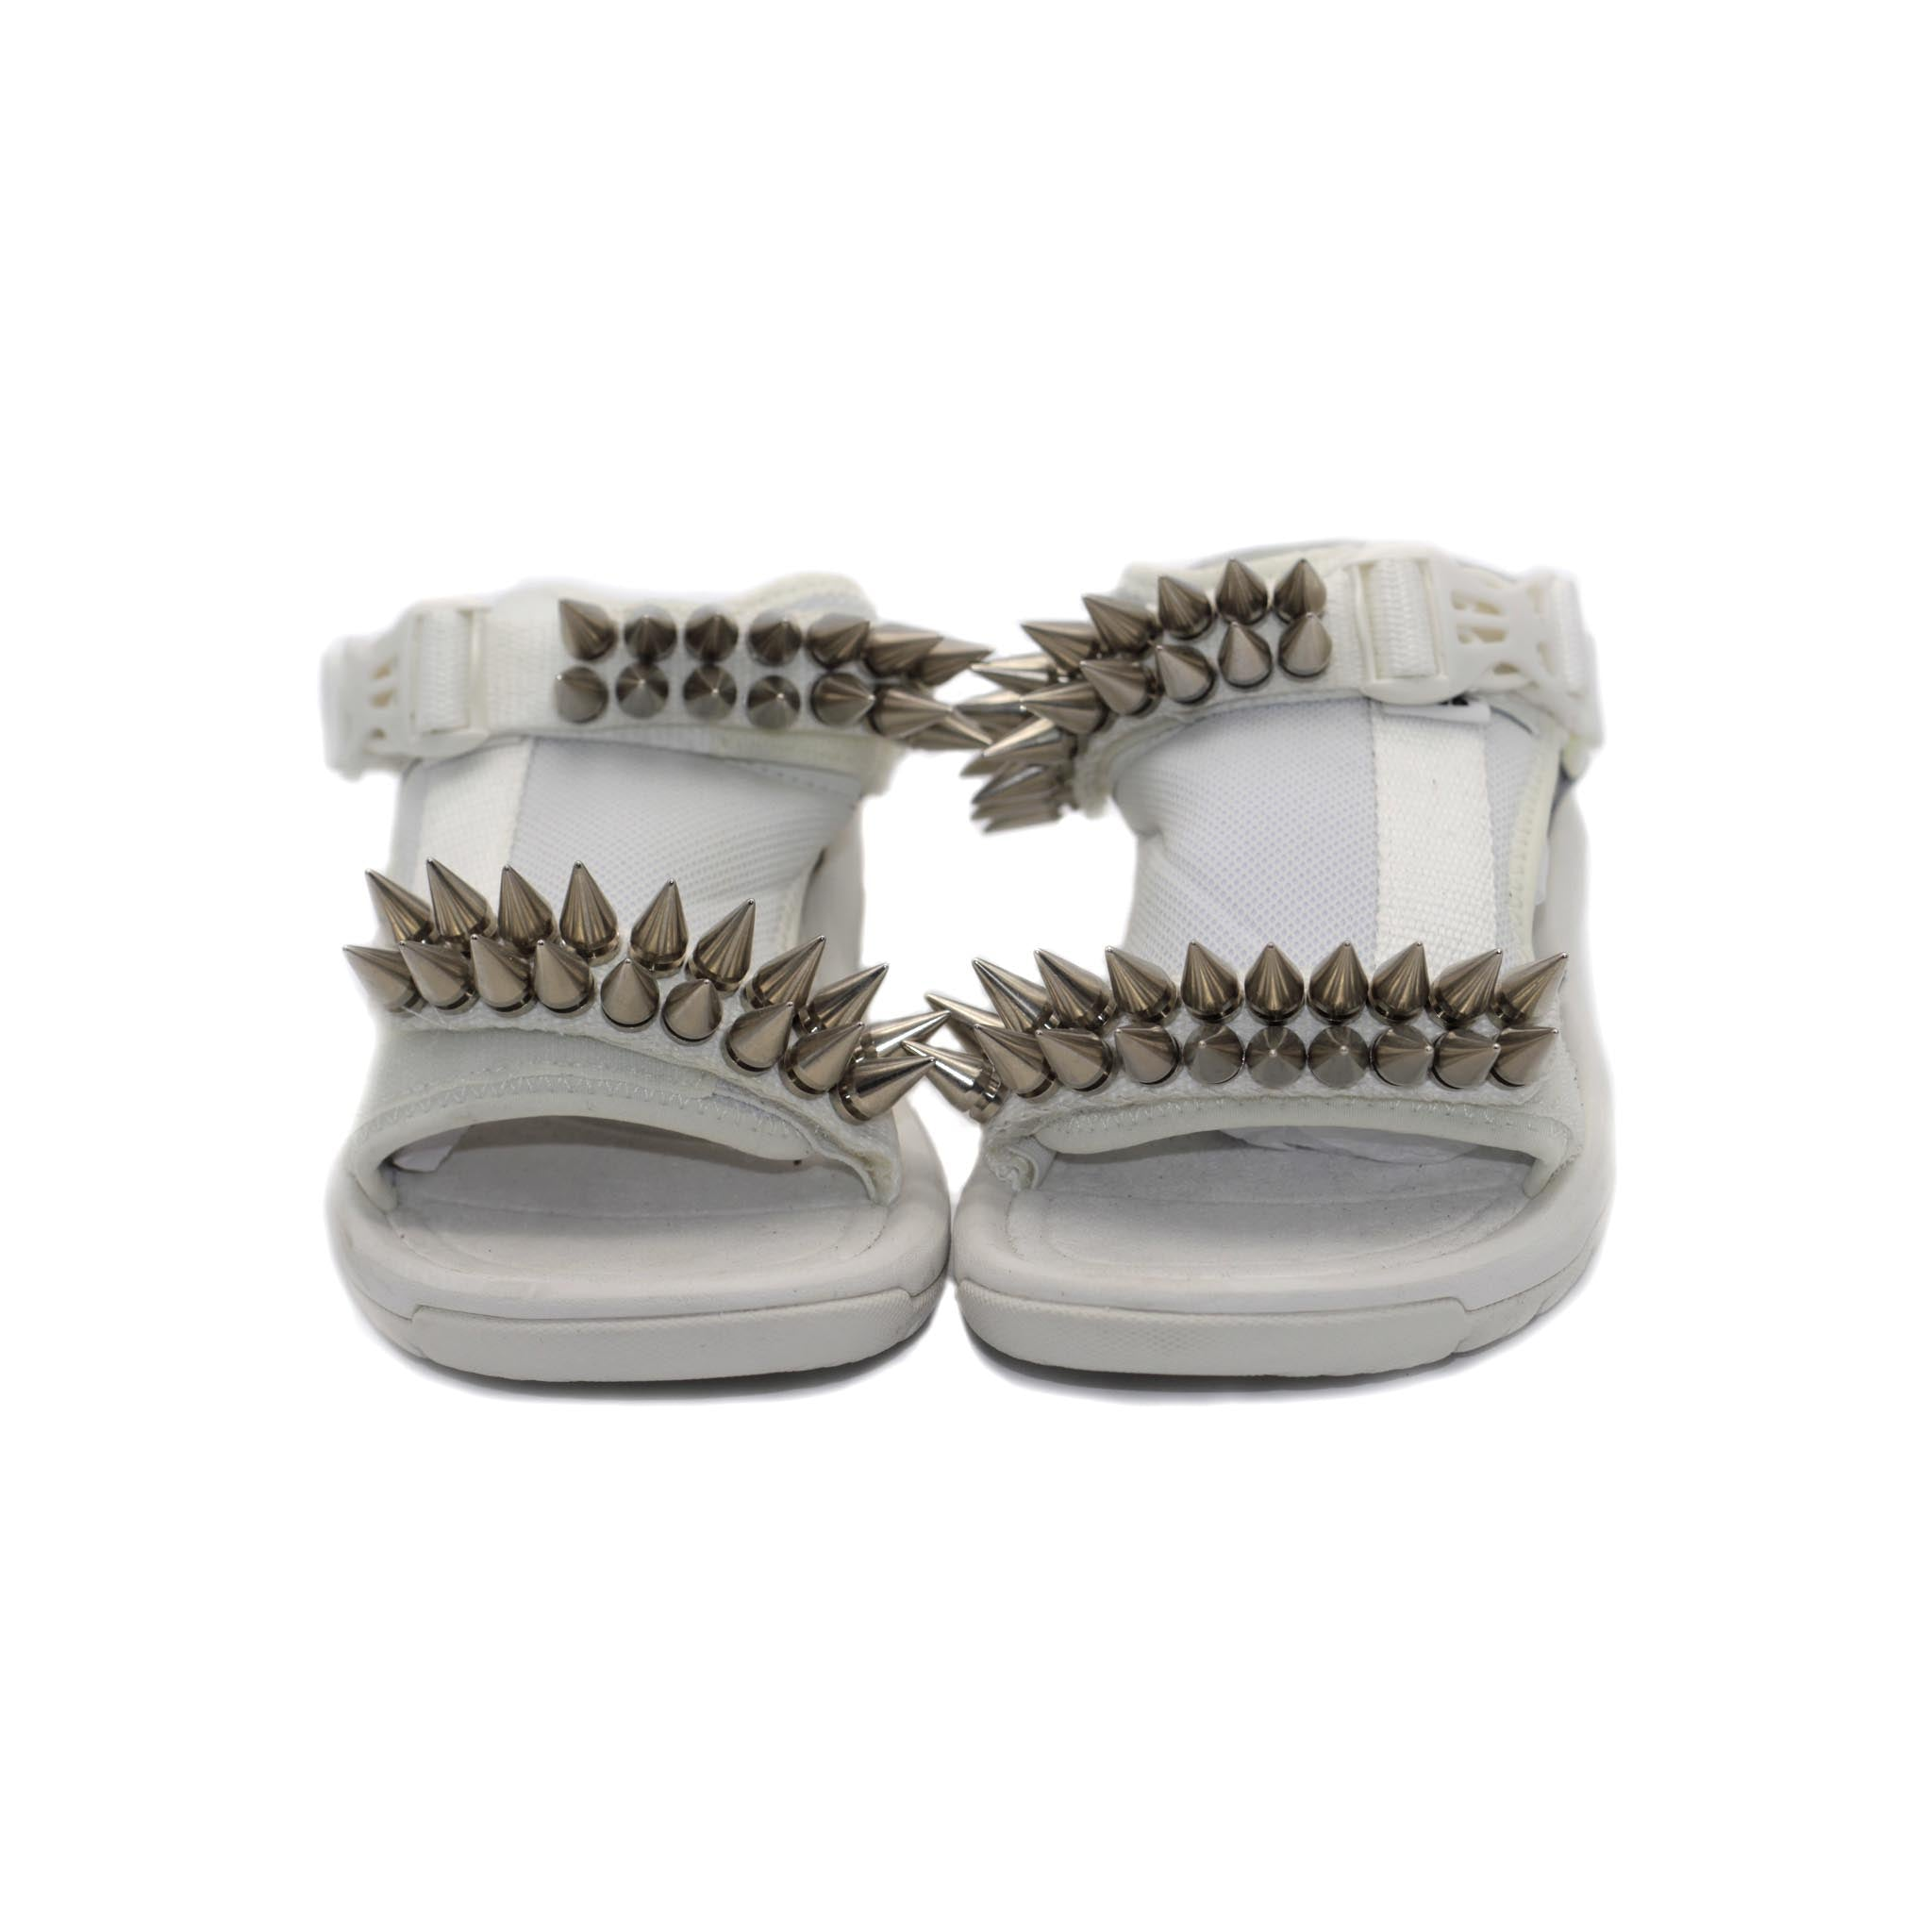 Teva Sandals: REWORKED Vicious Silver Edition